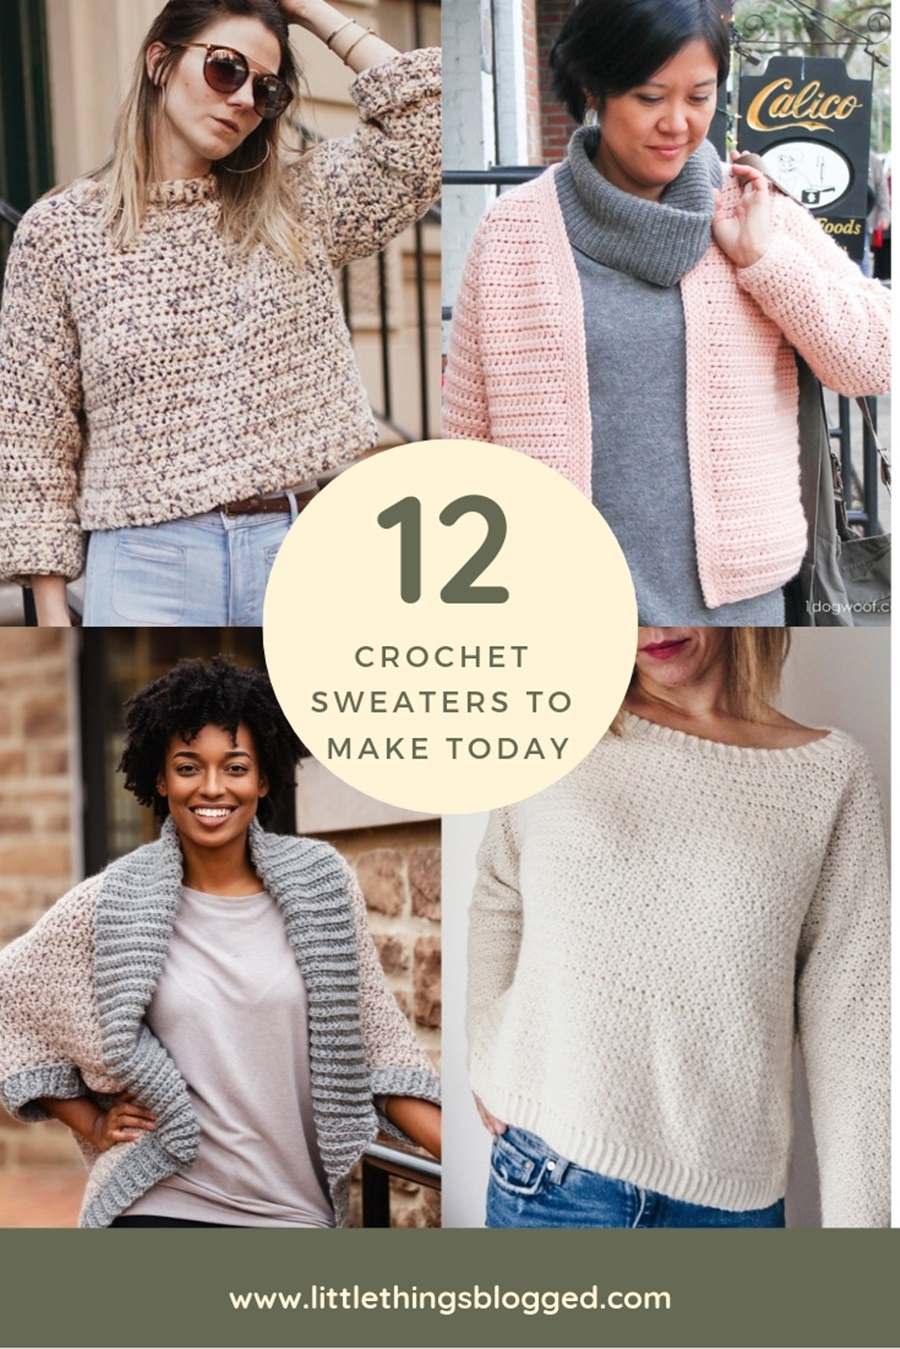 12 crochet sweaters to make today.jpg